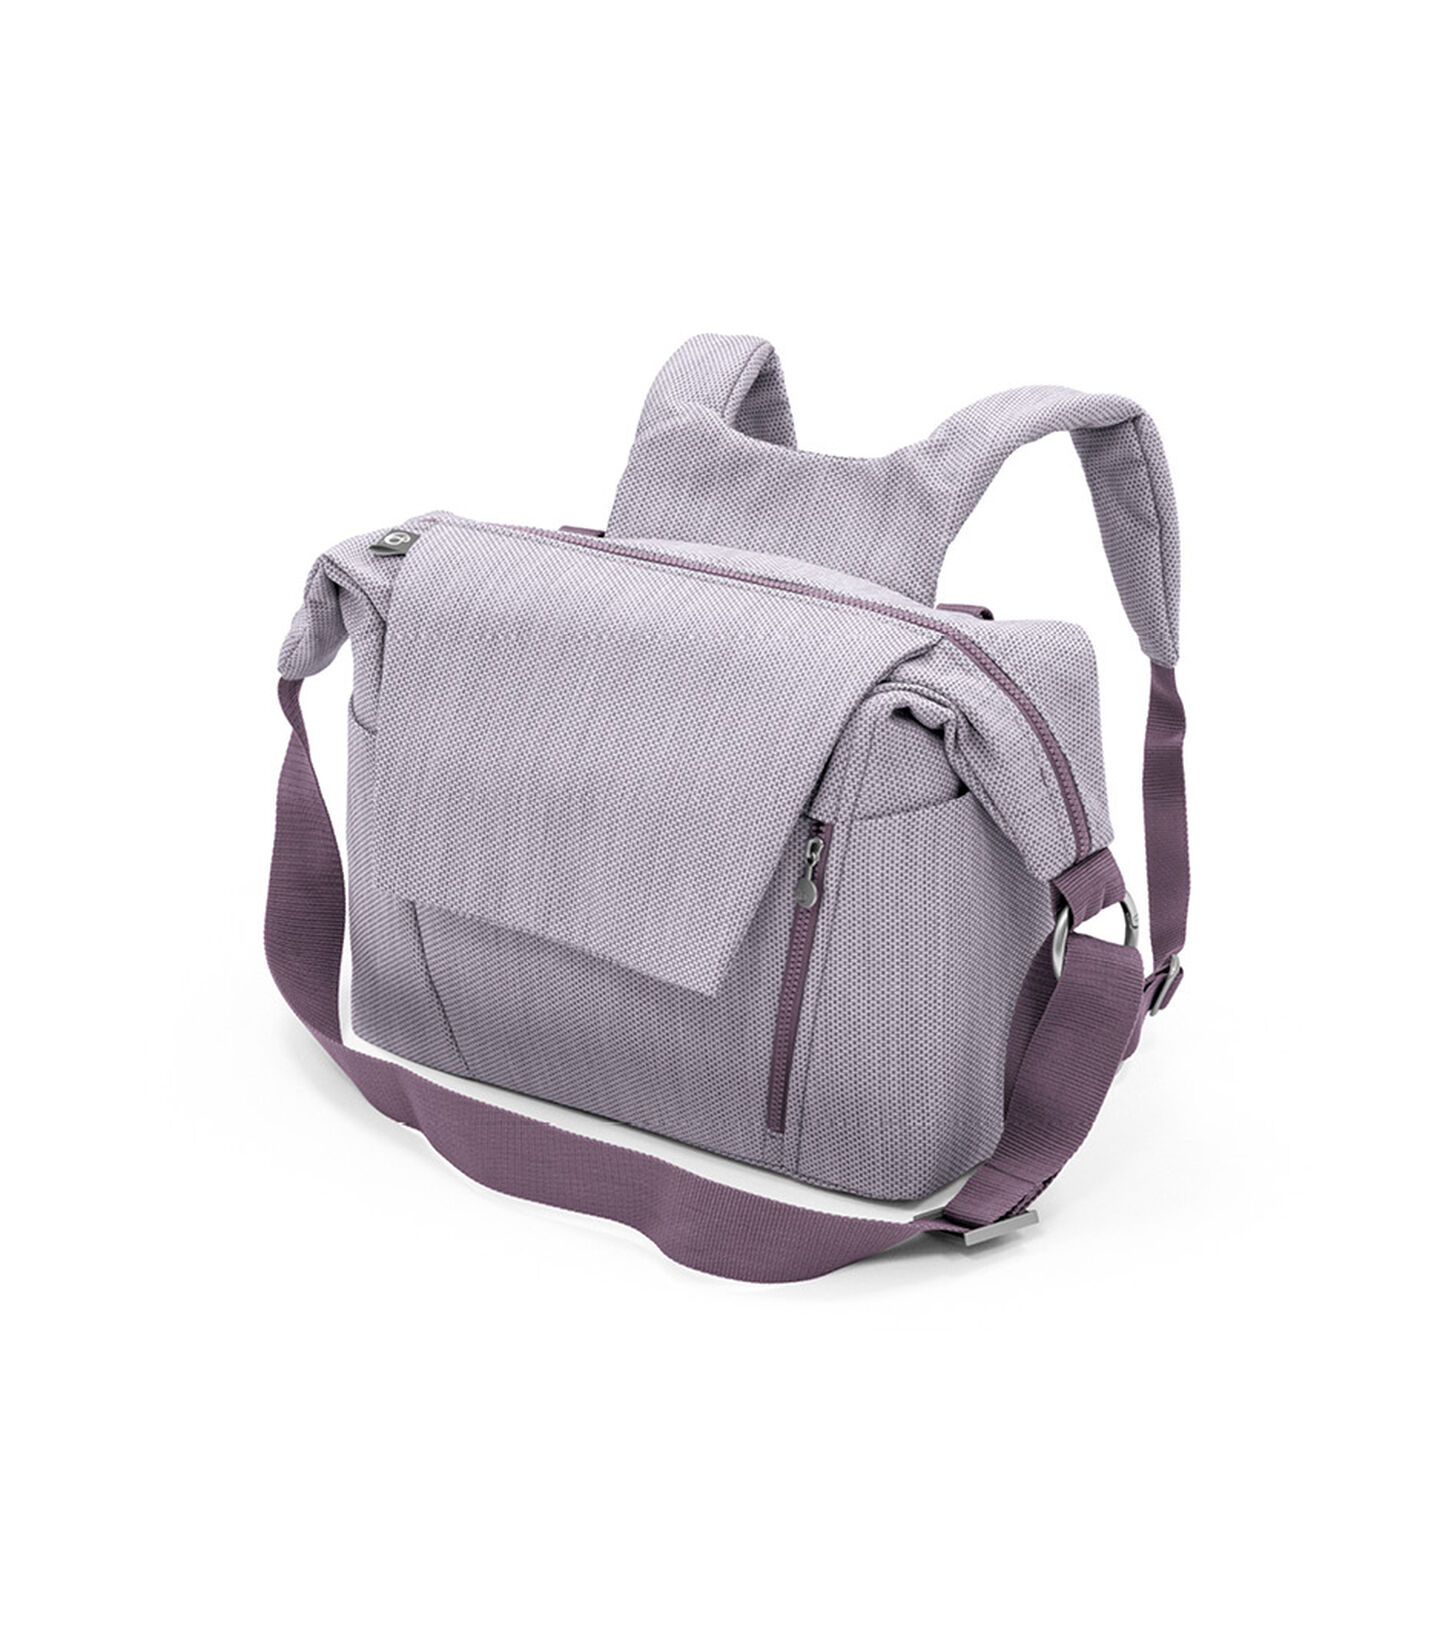 Stokke® Changing bag Brushed Lilac, Brushed Lilac, mainview